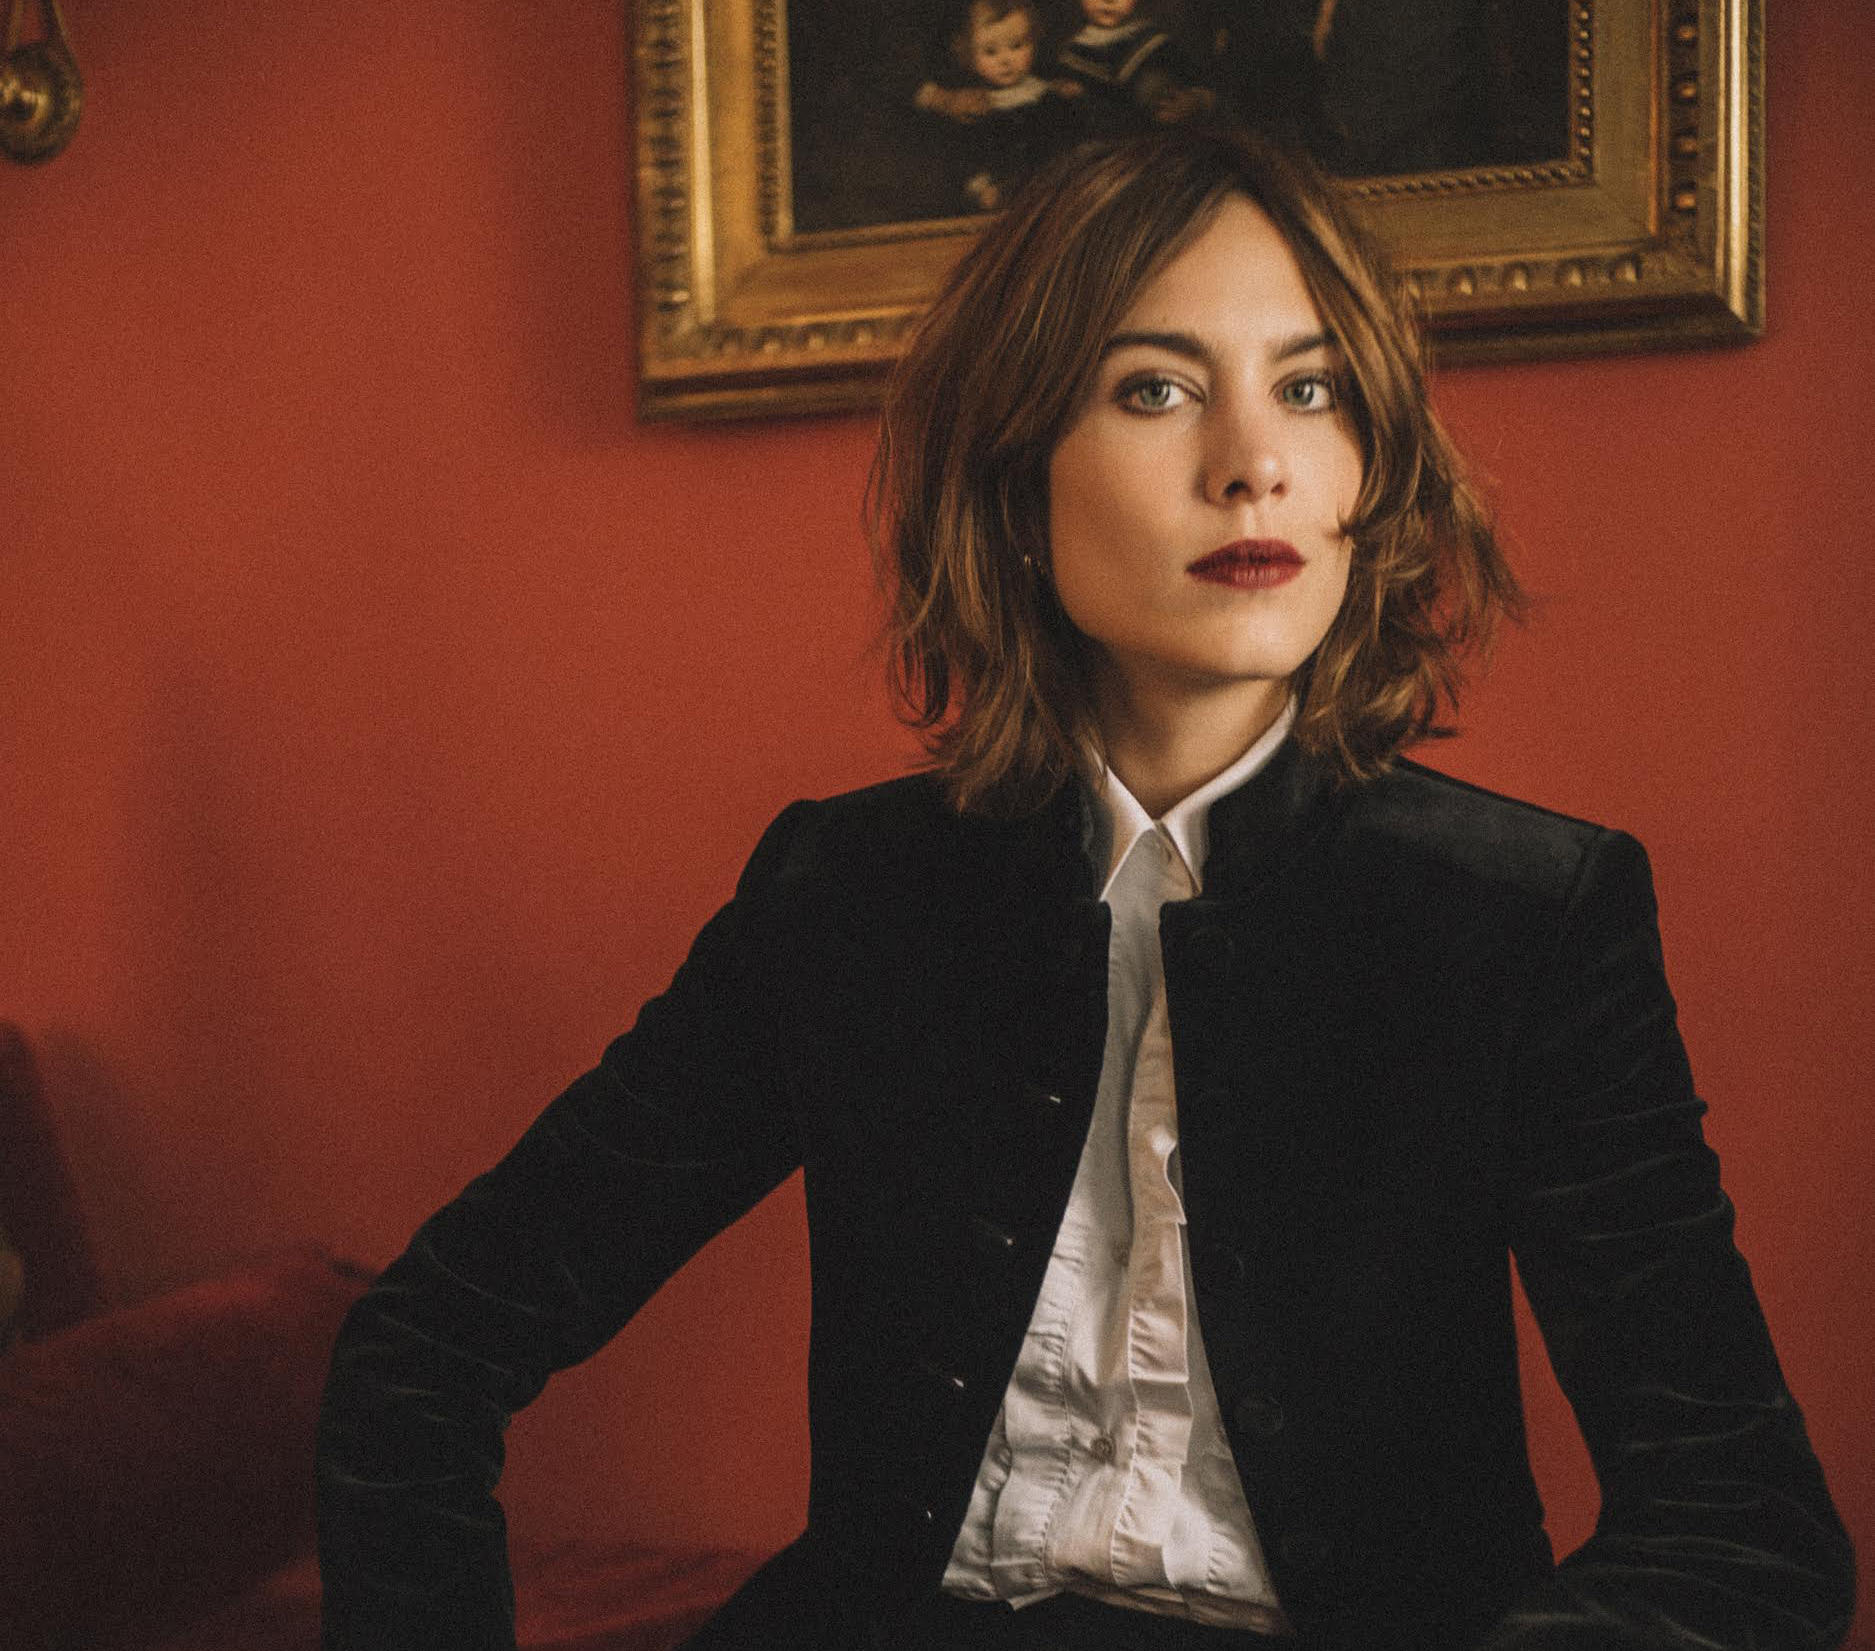 Alexa Chung is releasing her own fashion line and we're low-key obsessed